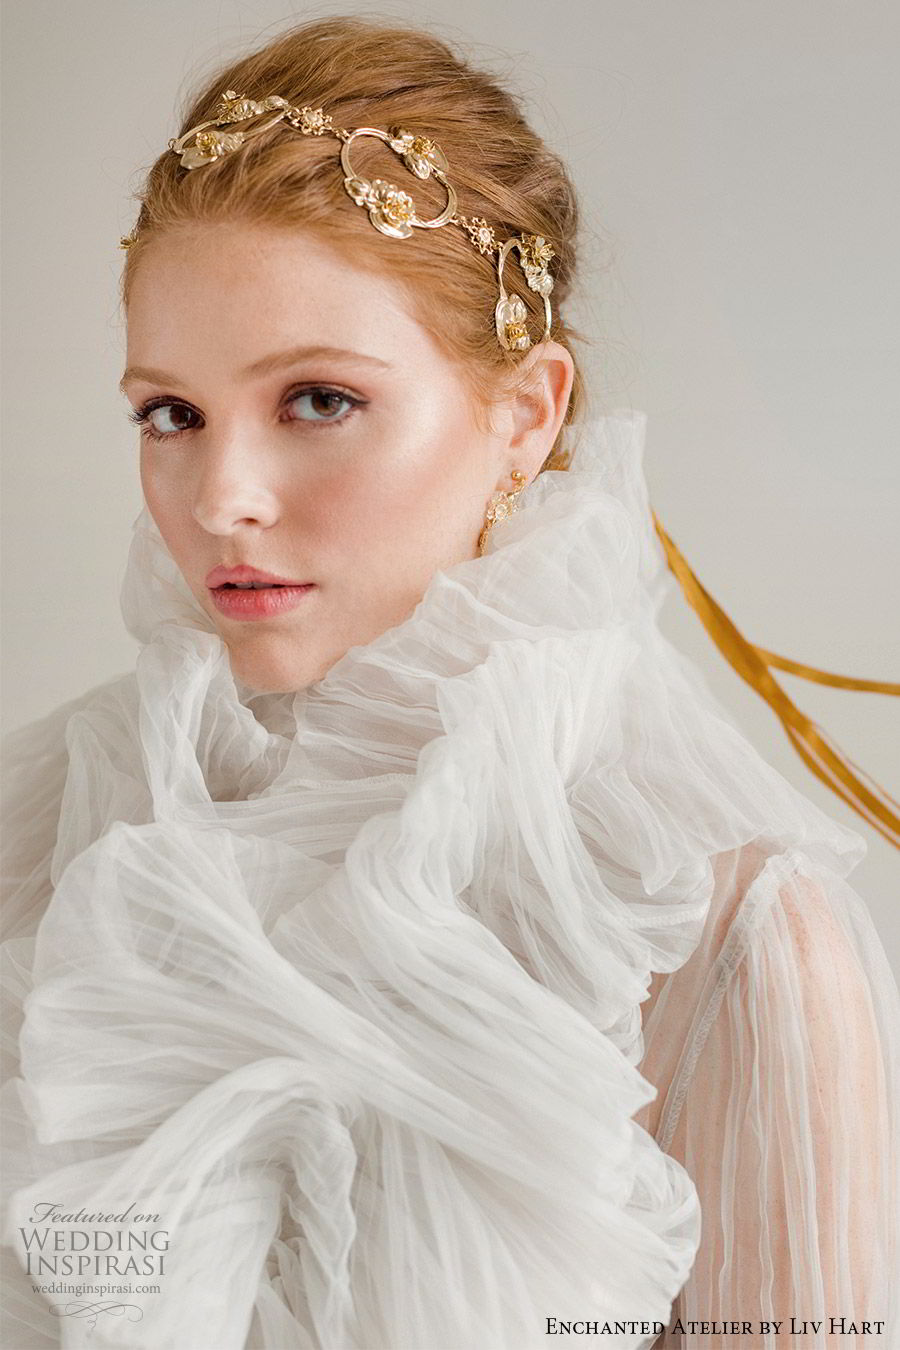 enchanted atelier liv hart fall 2019 accessories gold headband headpiece (1) mv